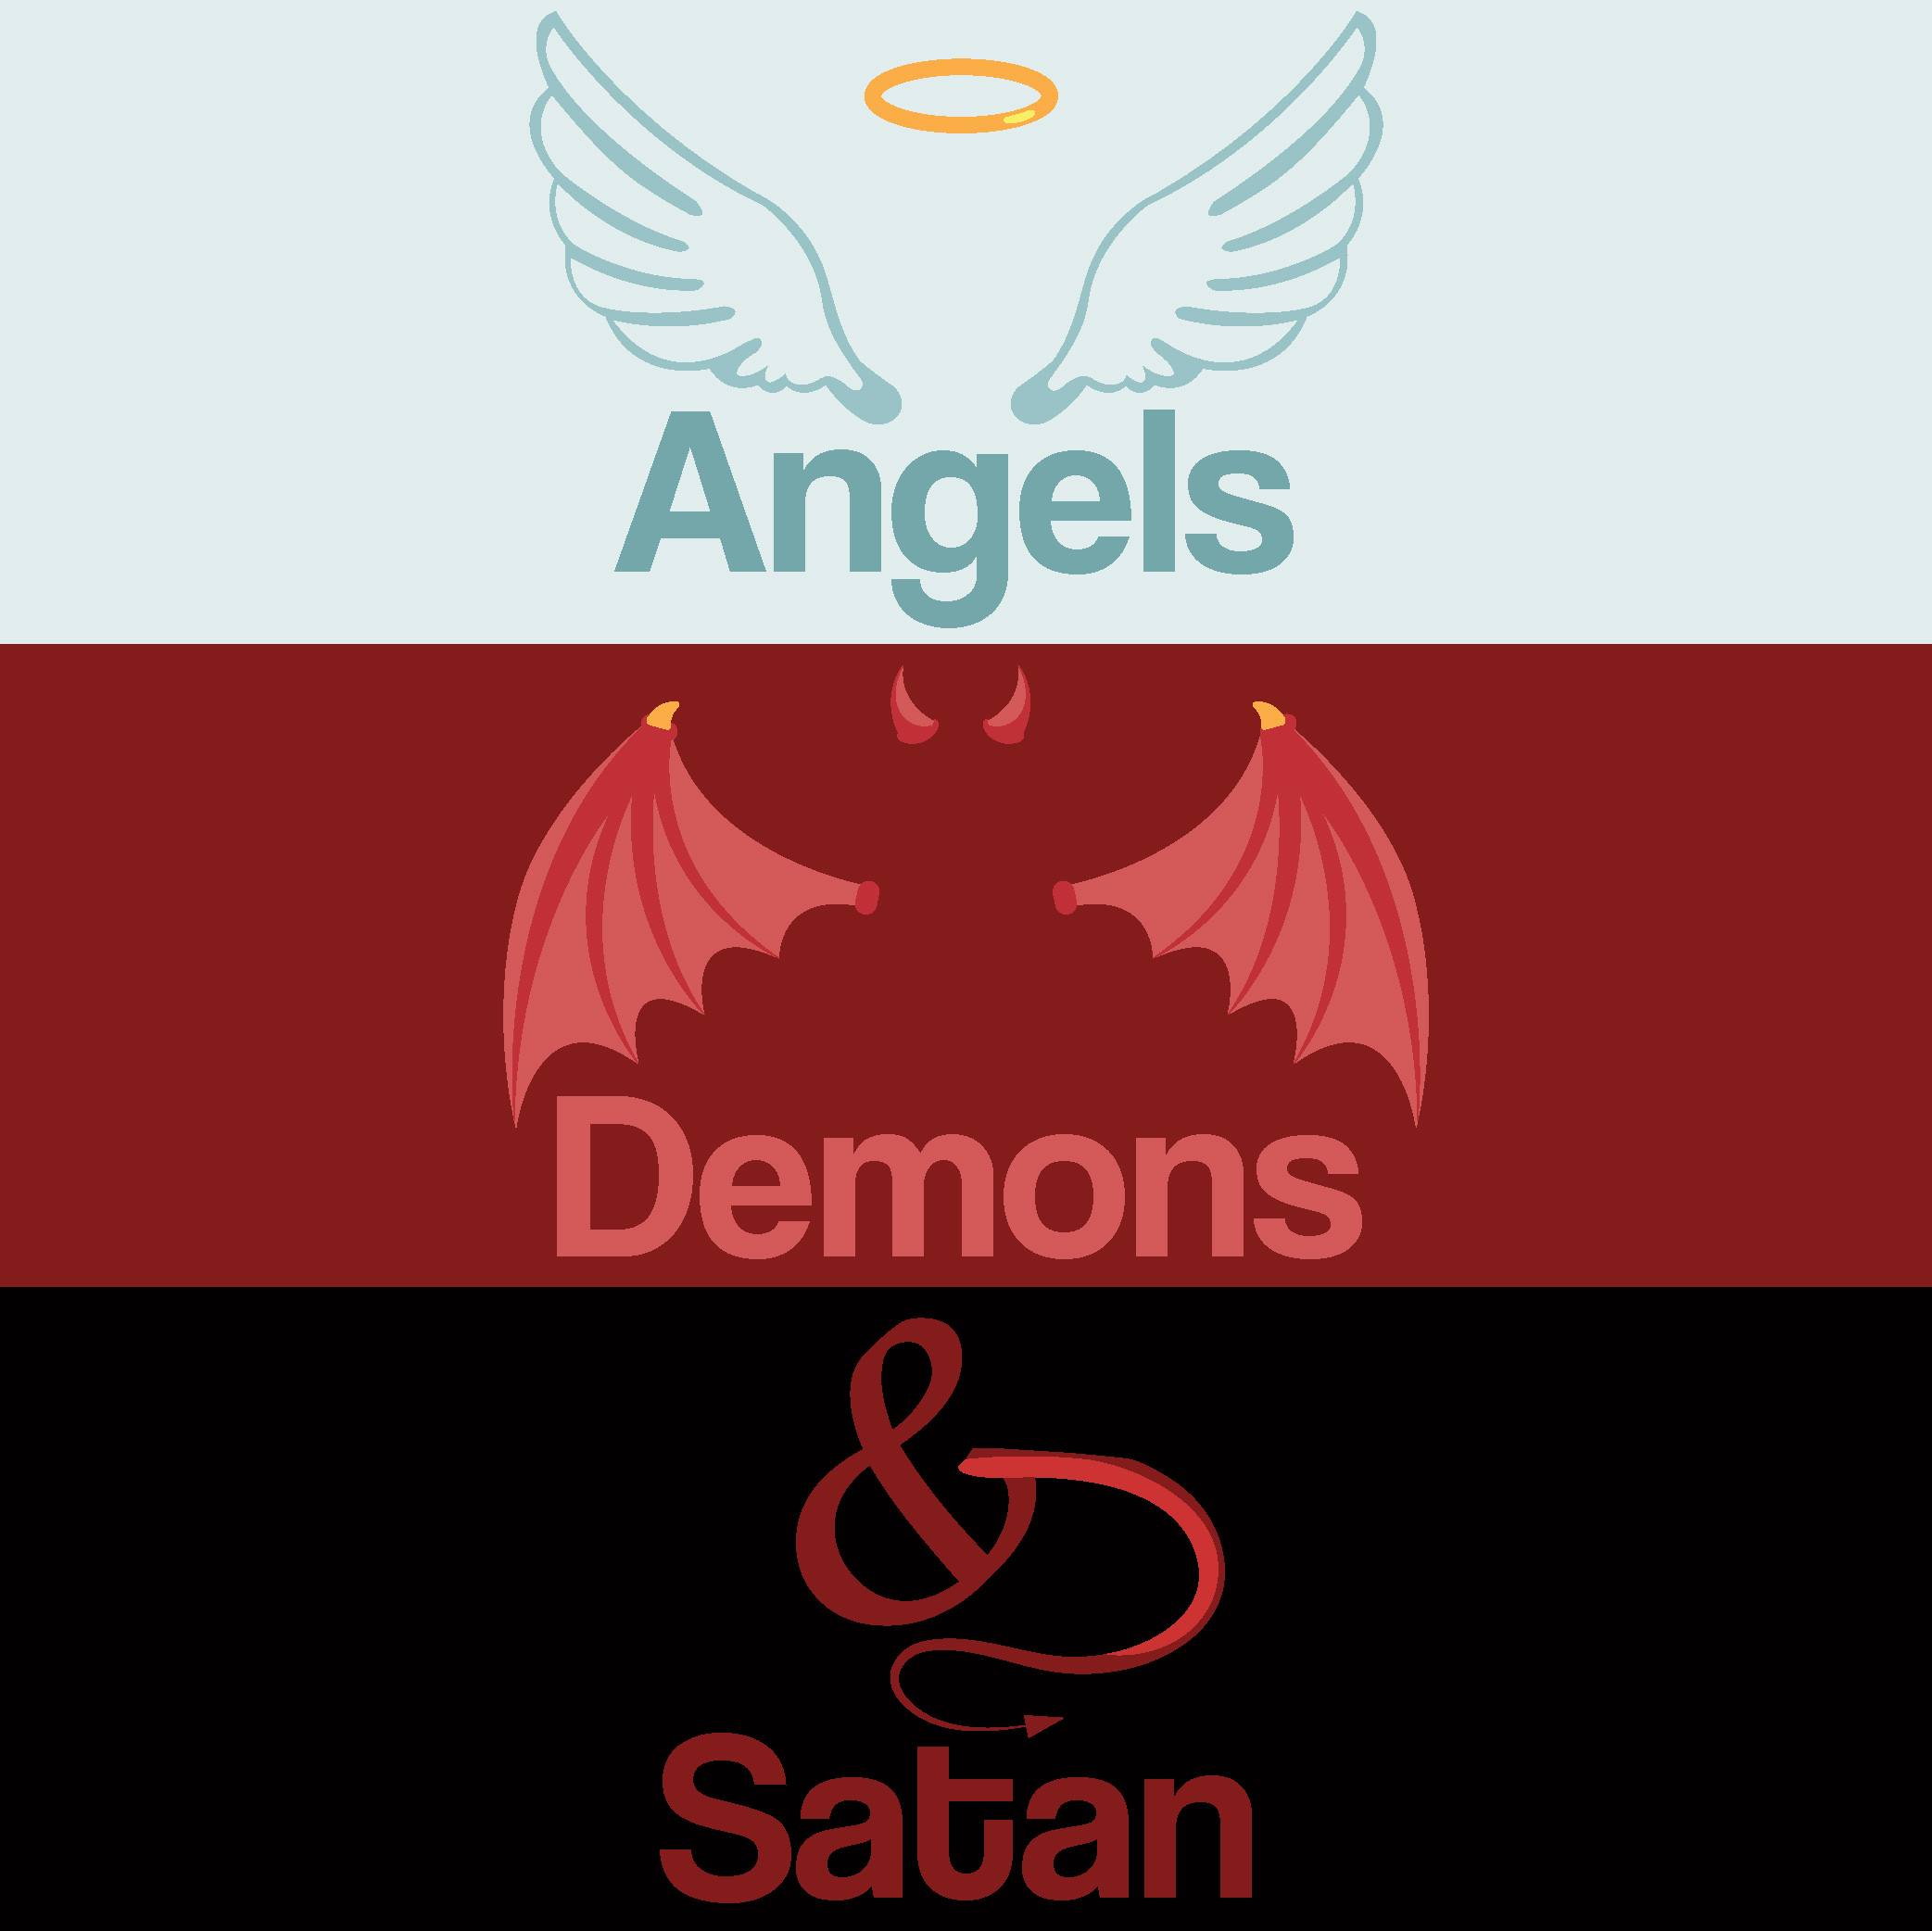 Angels, Demons, and Satan 03: Angels (Pt. 3)